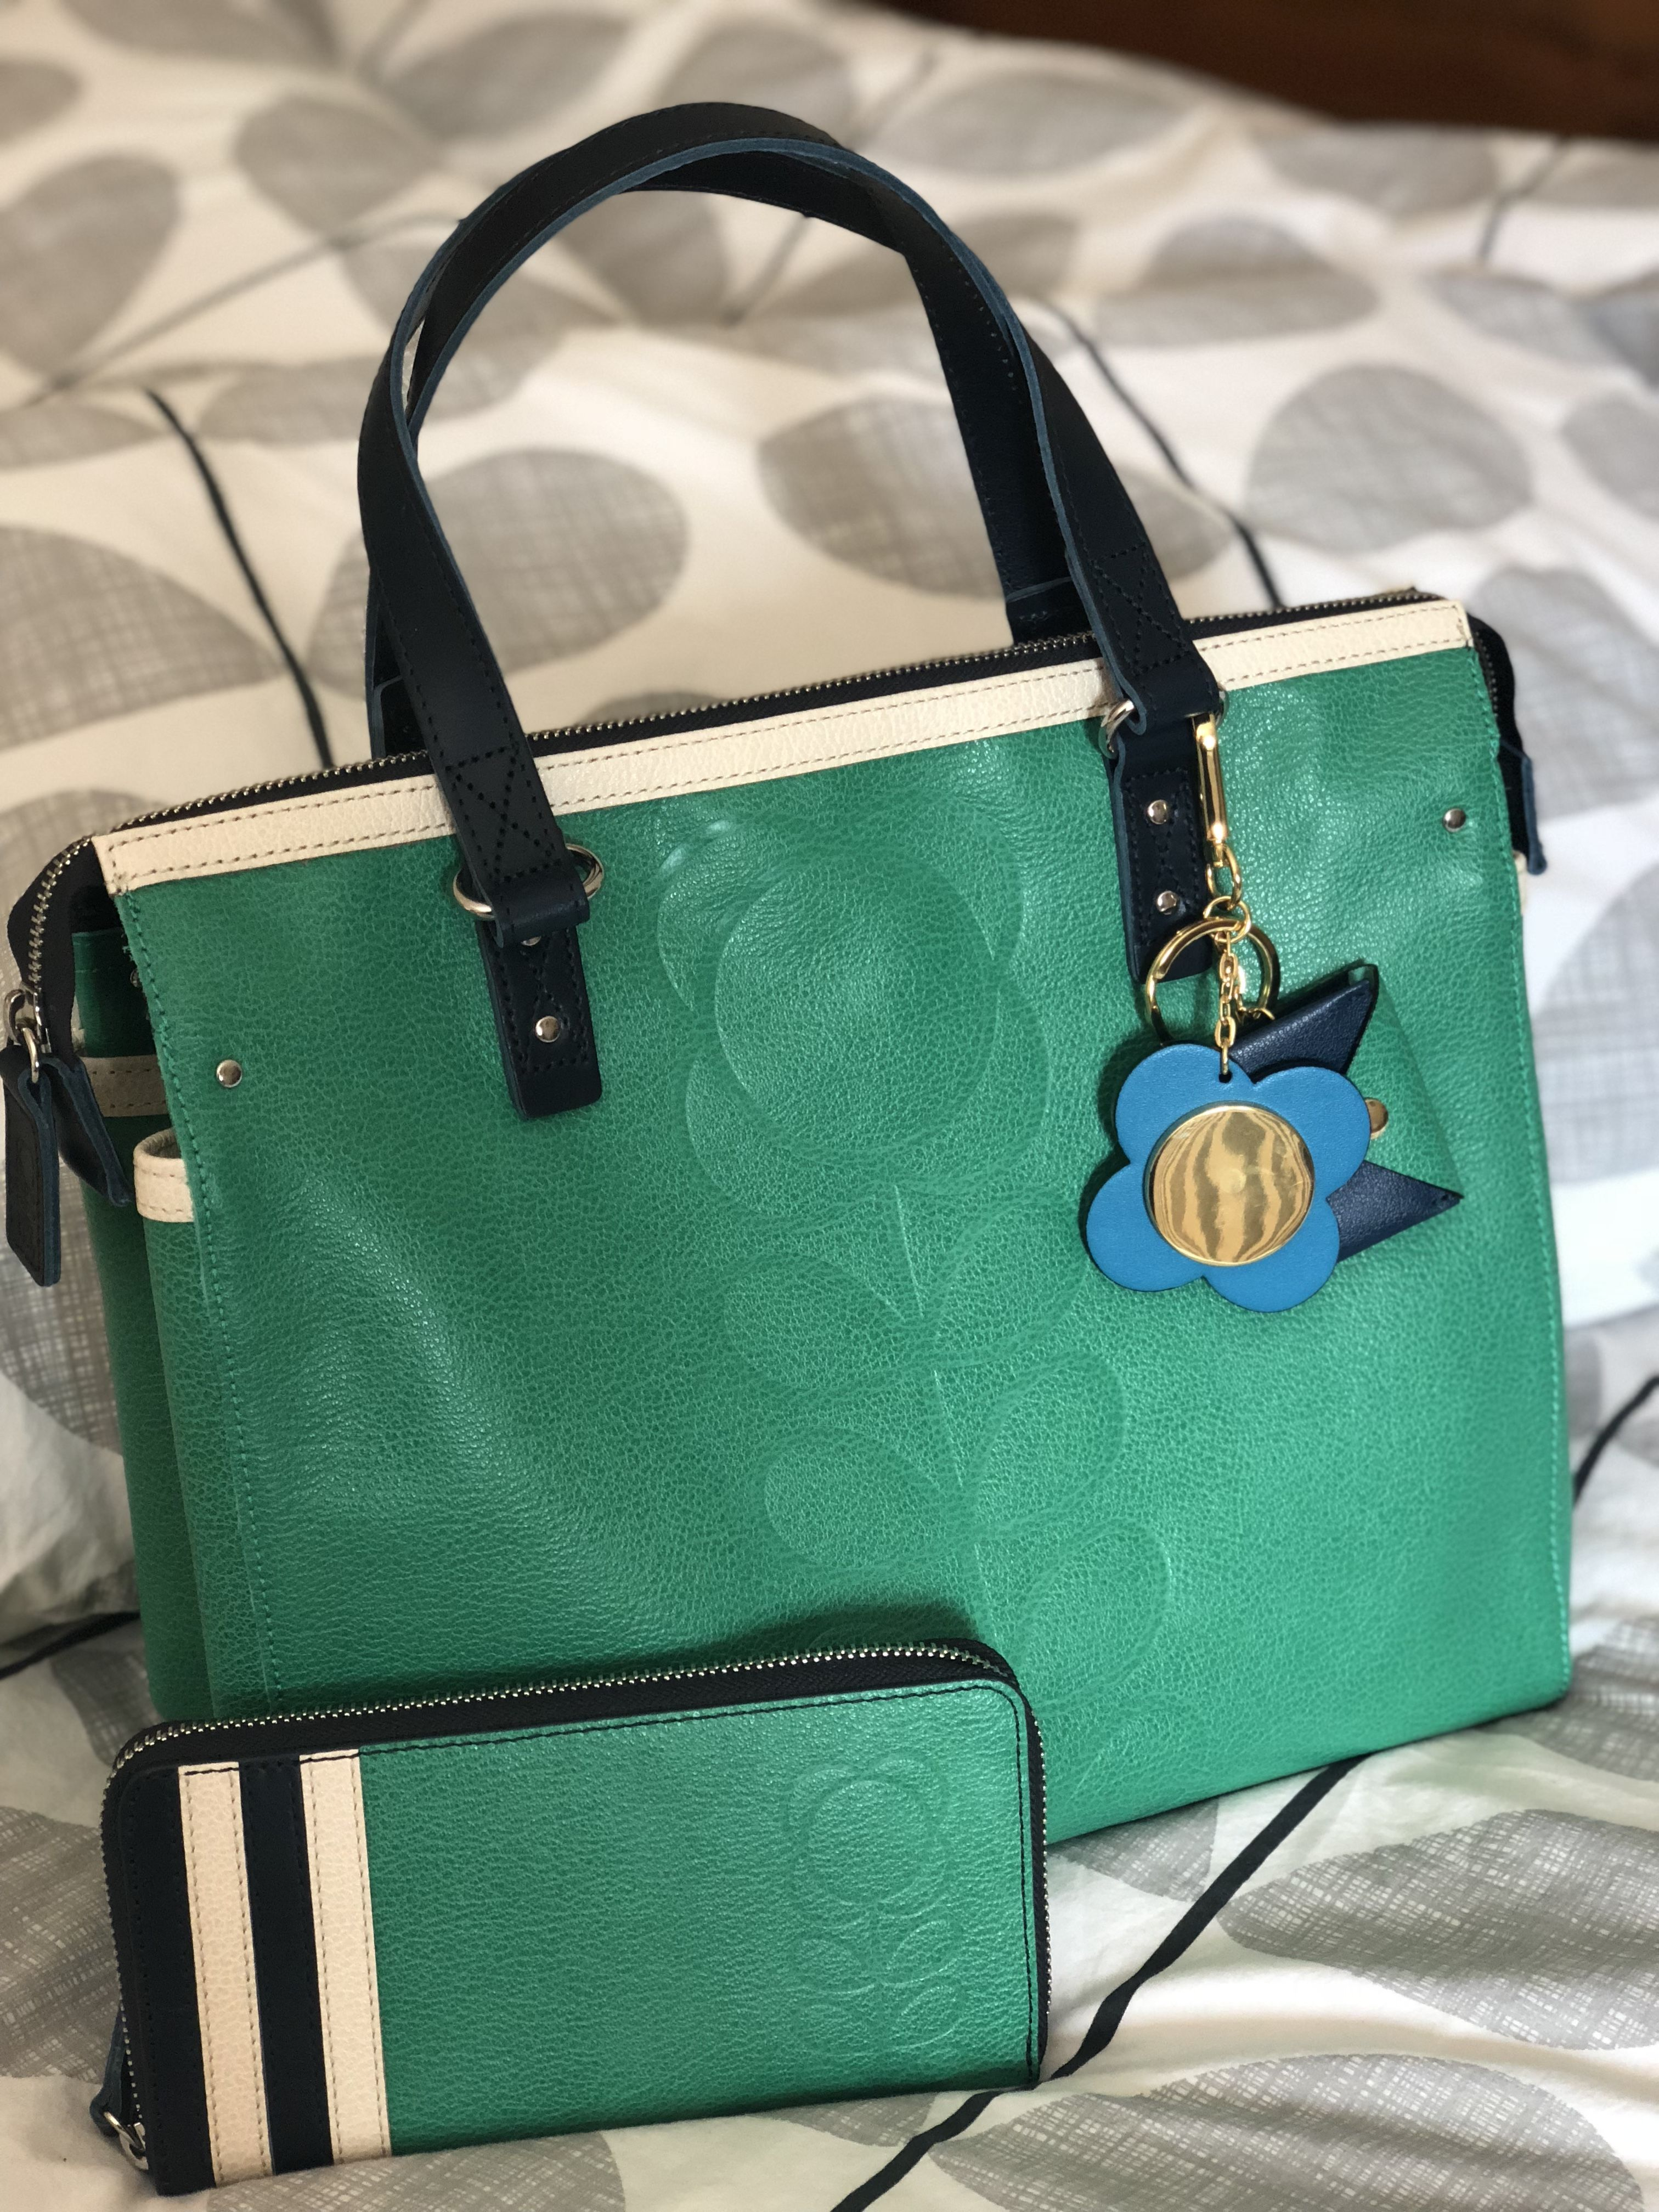 e9eed1208aff Orla Kiely Embossed Stem Leather Messenger bag in Jade  orlakiely ...